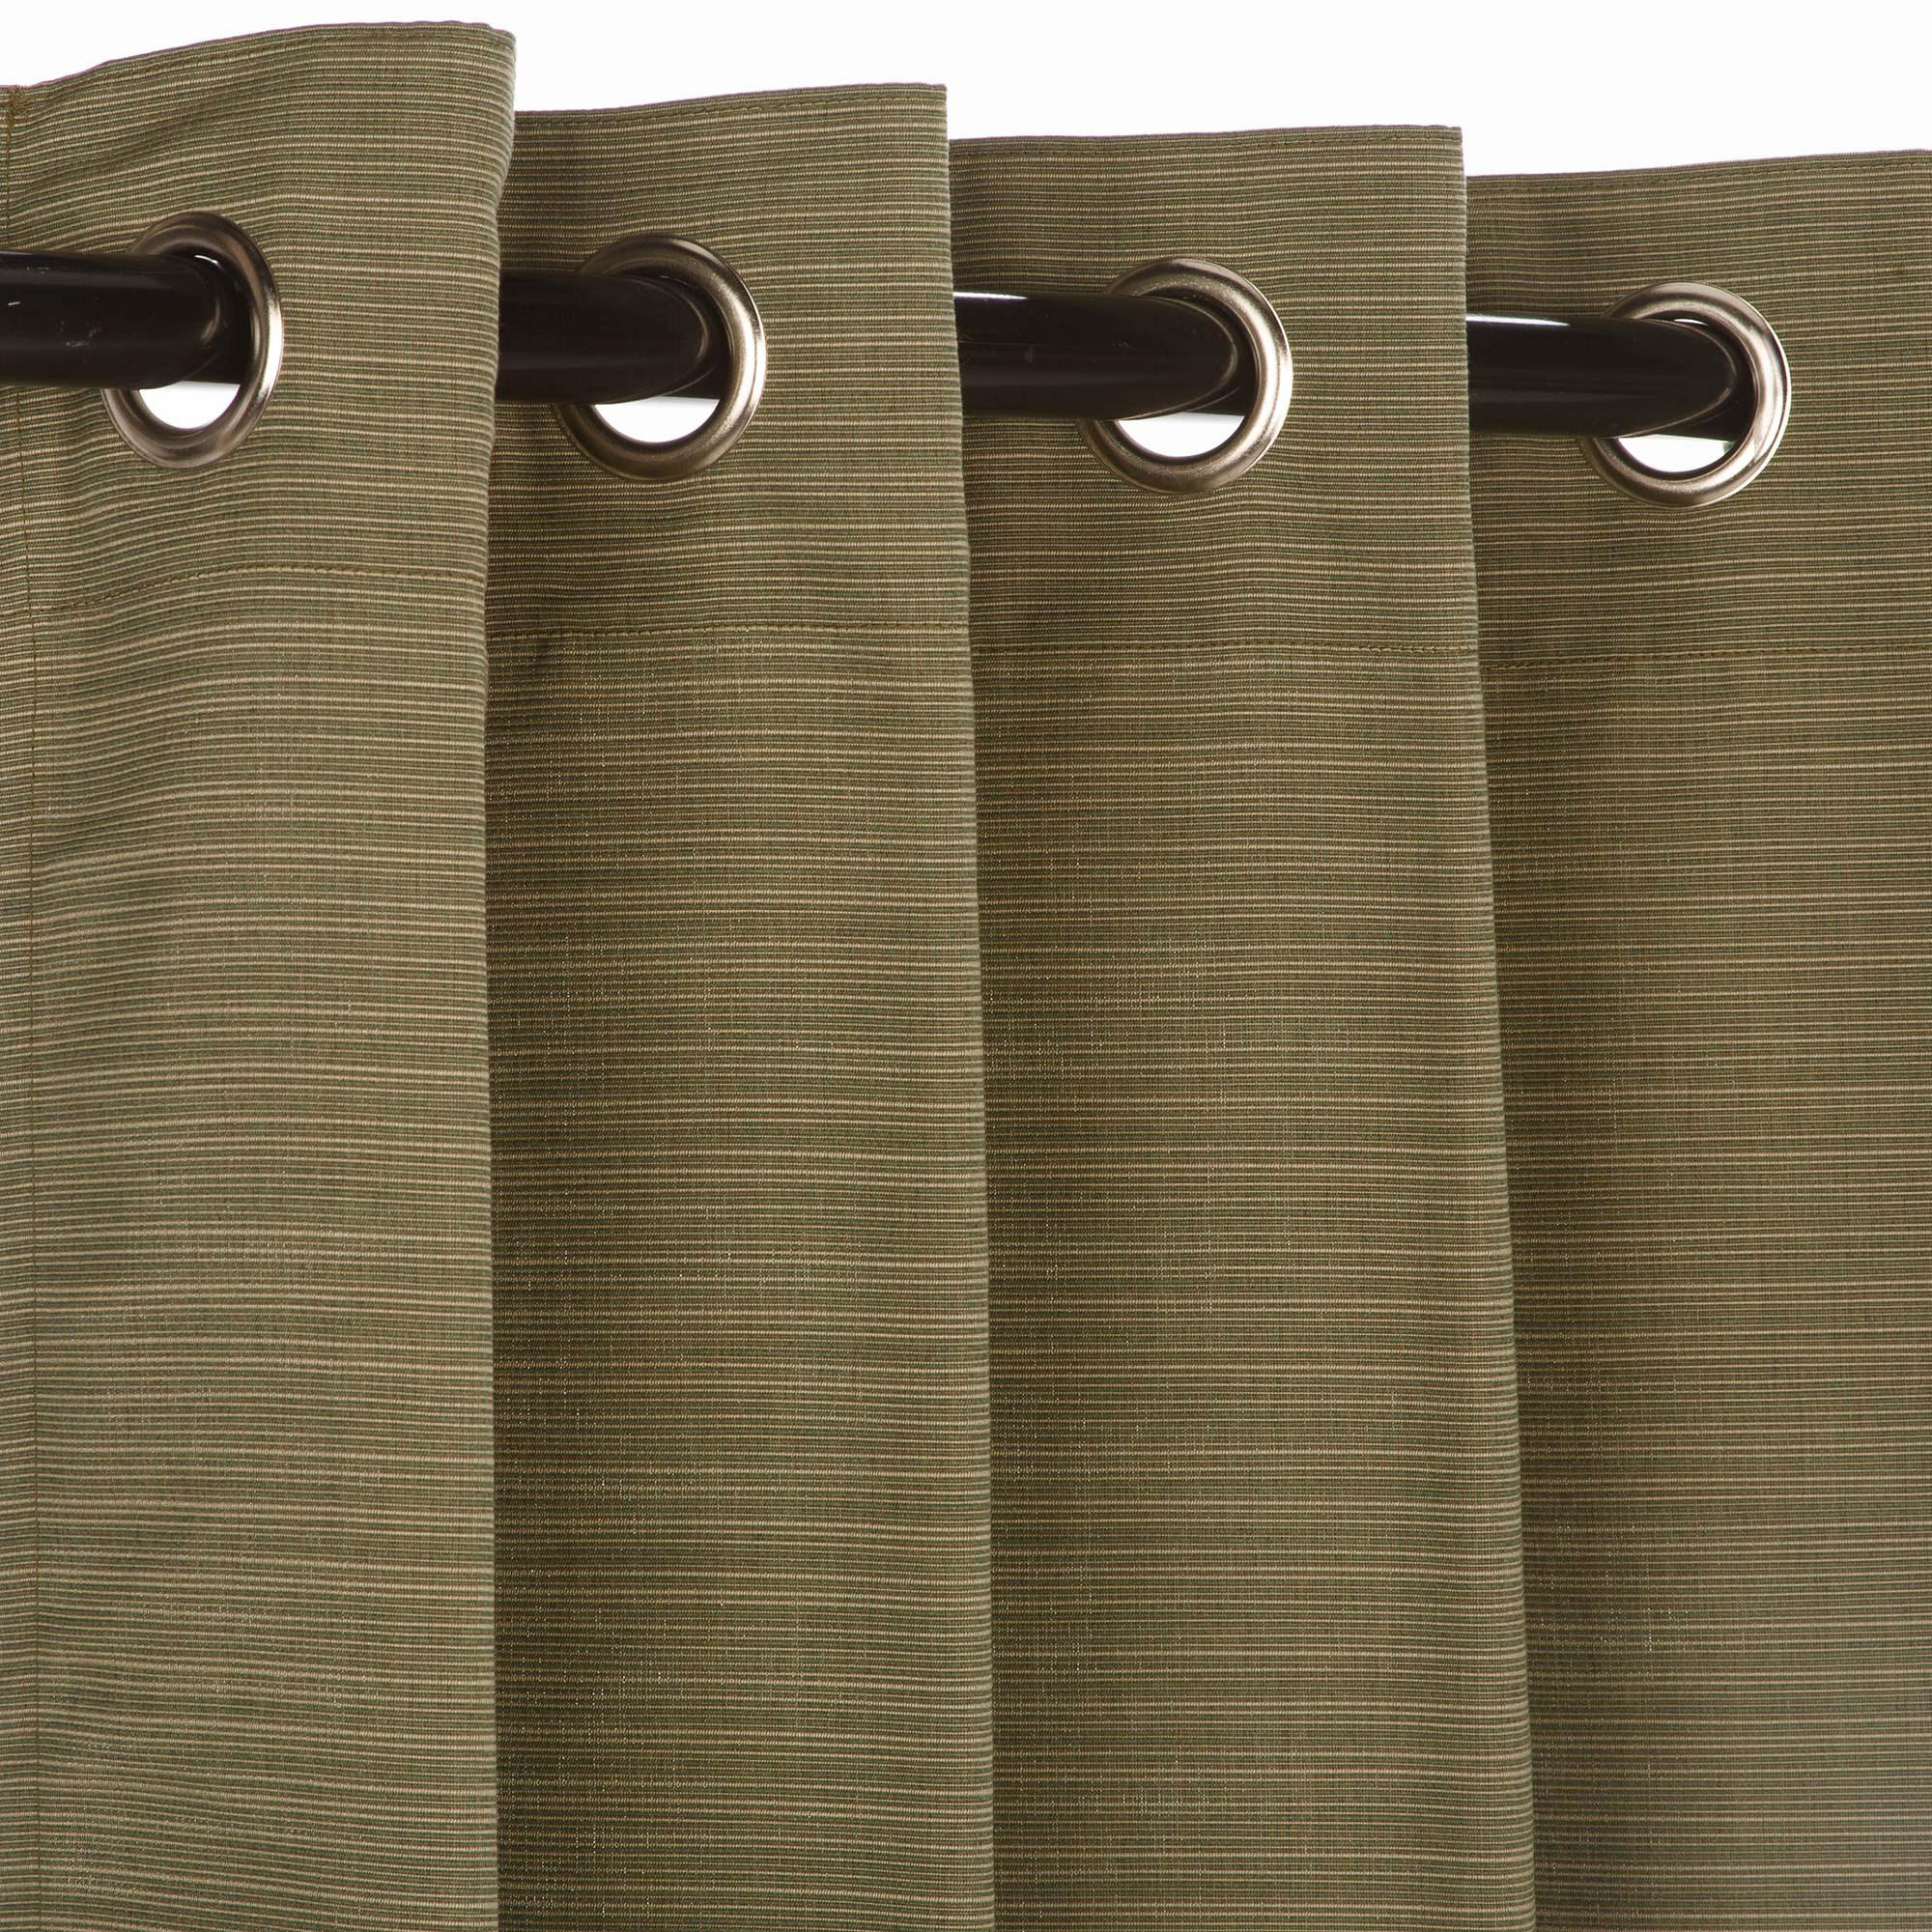 Dupione Laurel Grommet Sunbrella Outdoor Curtains